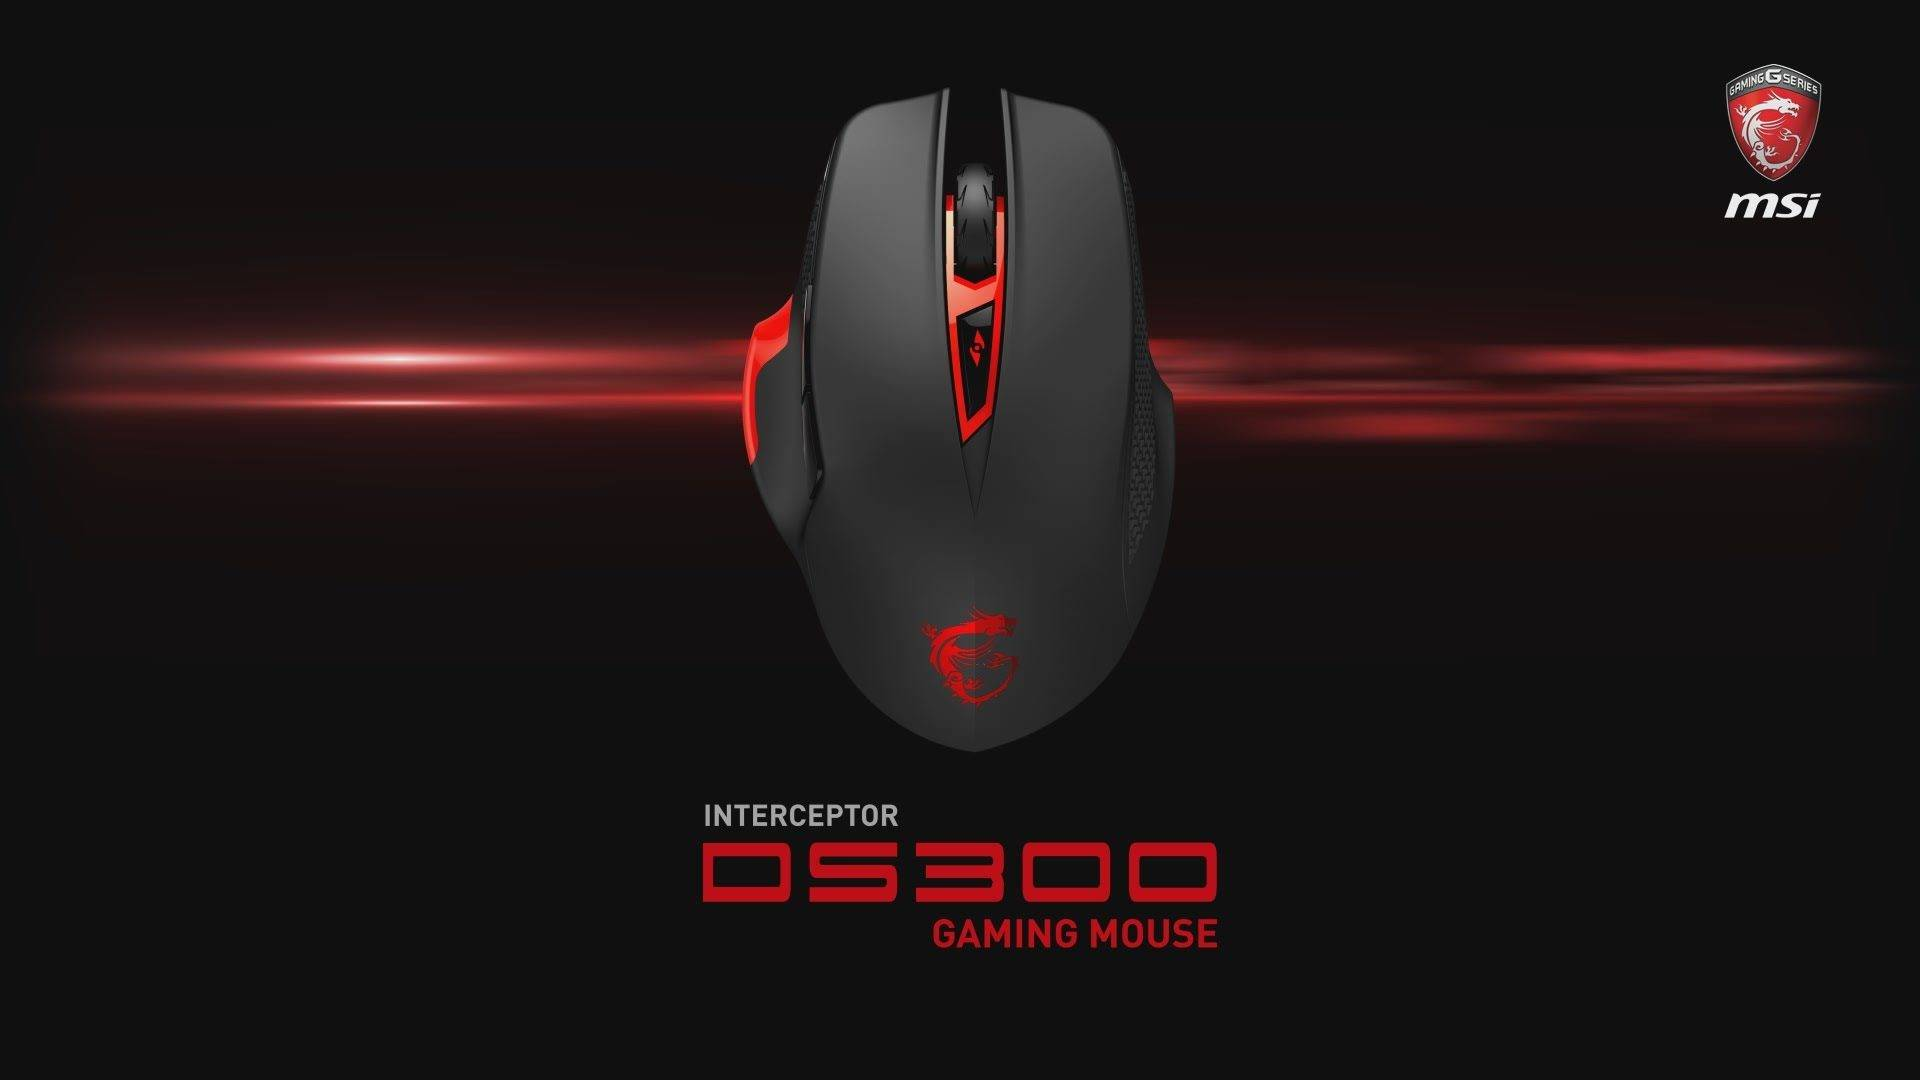 Review: MSI Interceptor DS300 Gaming Mouse